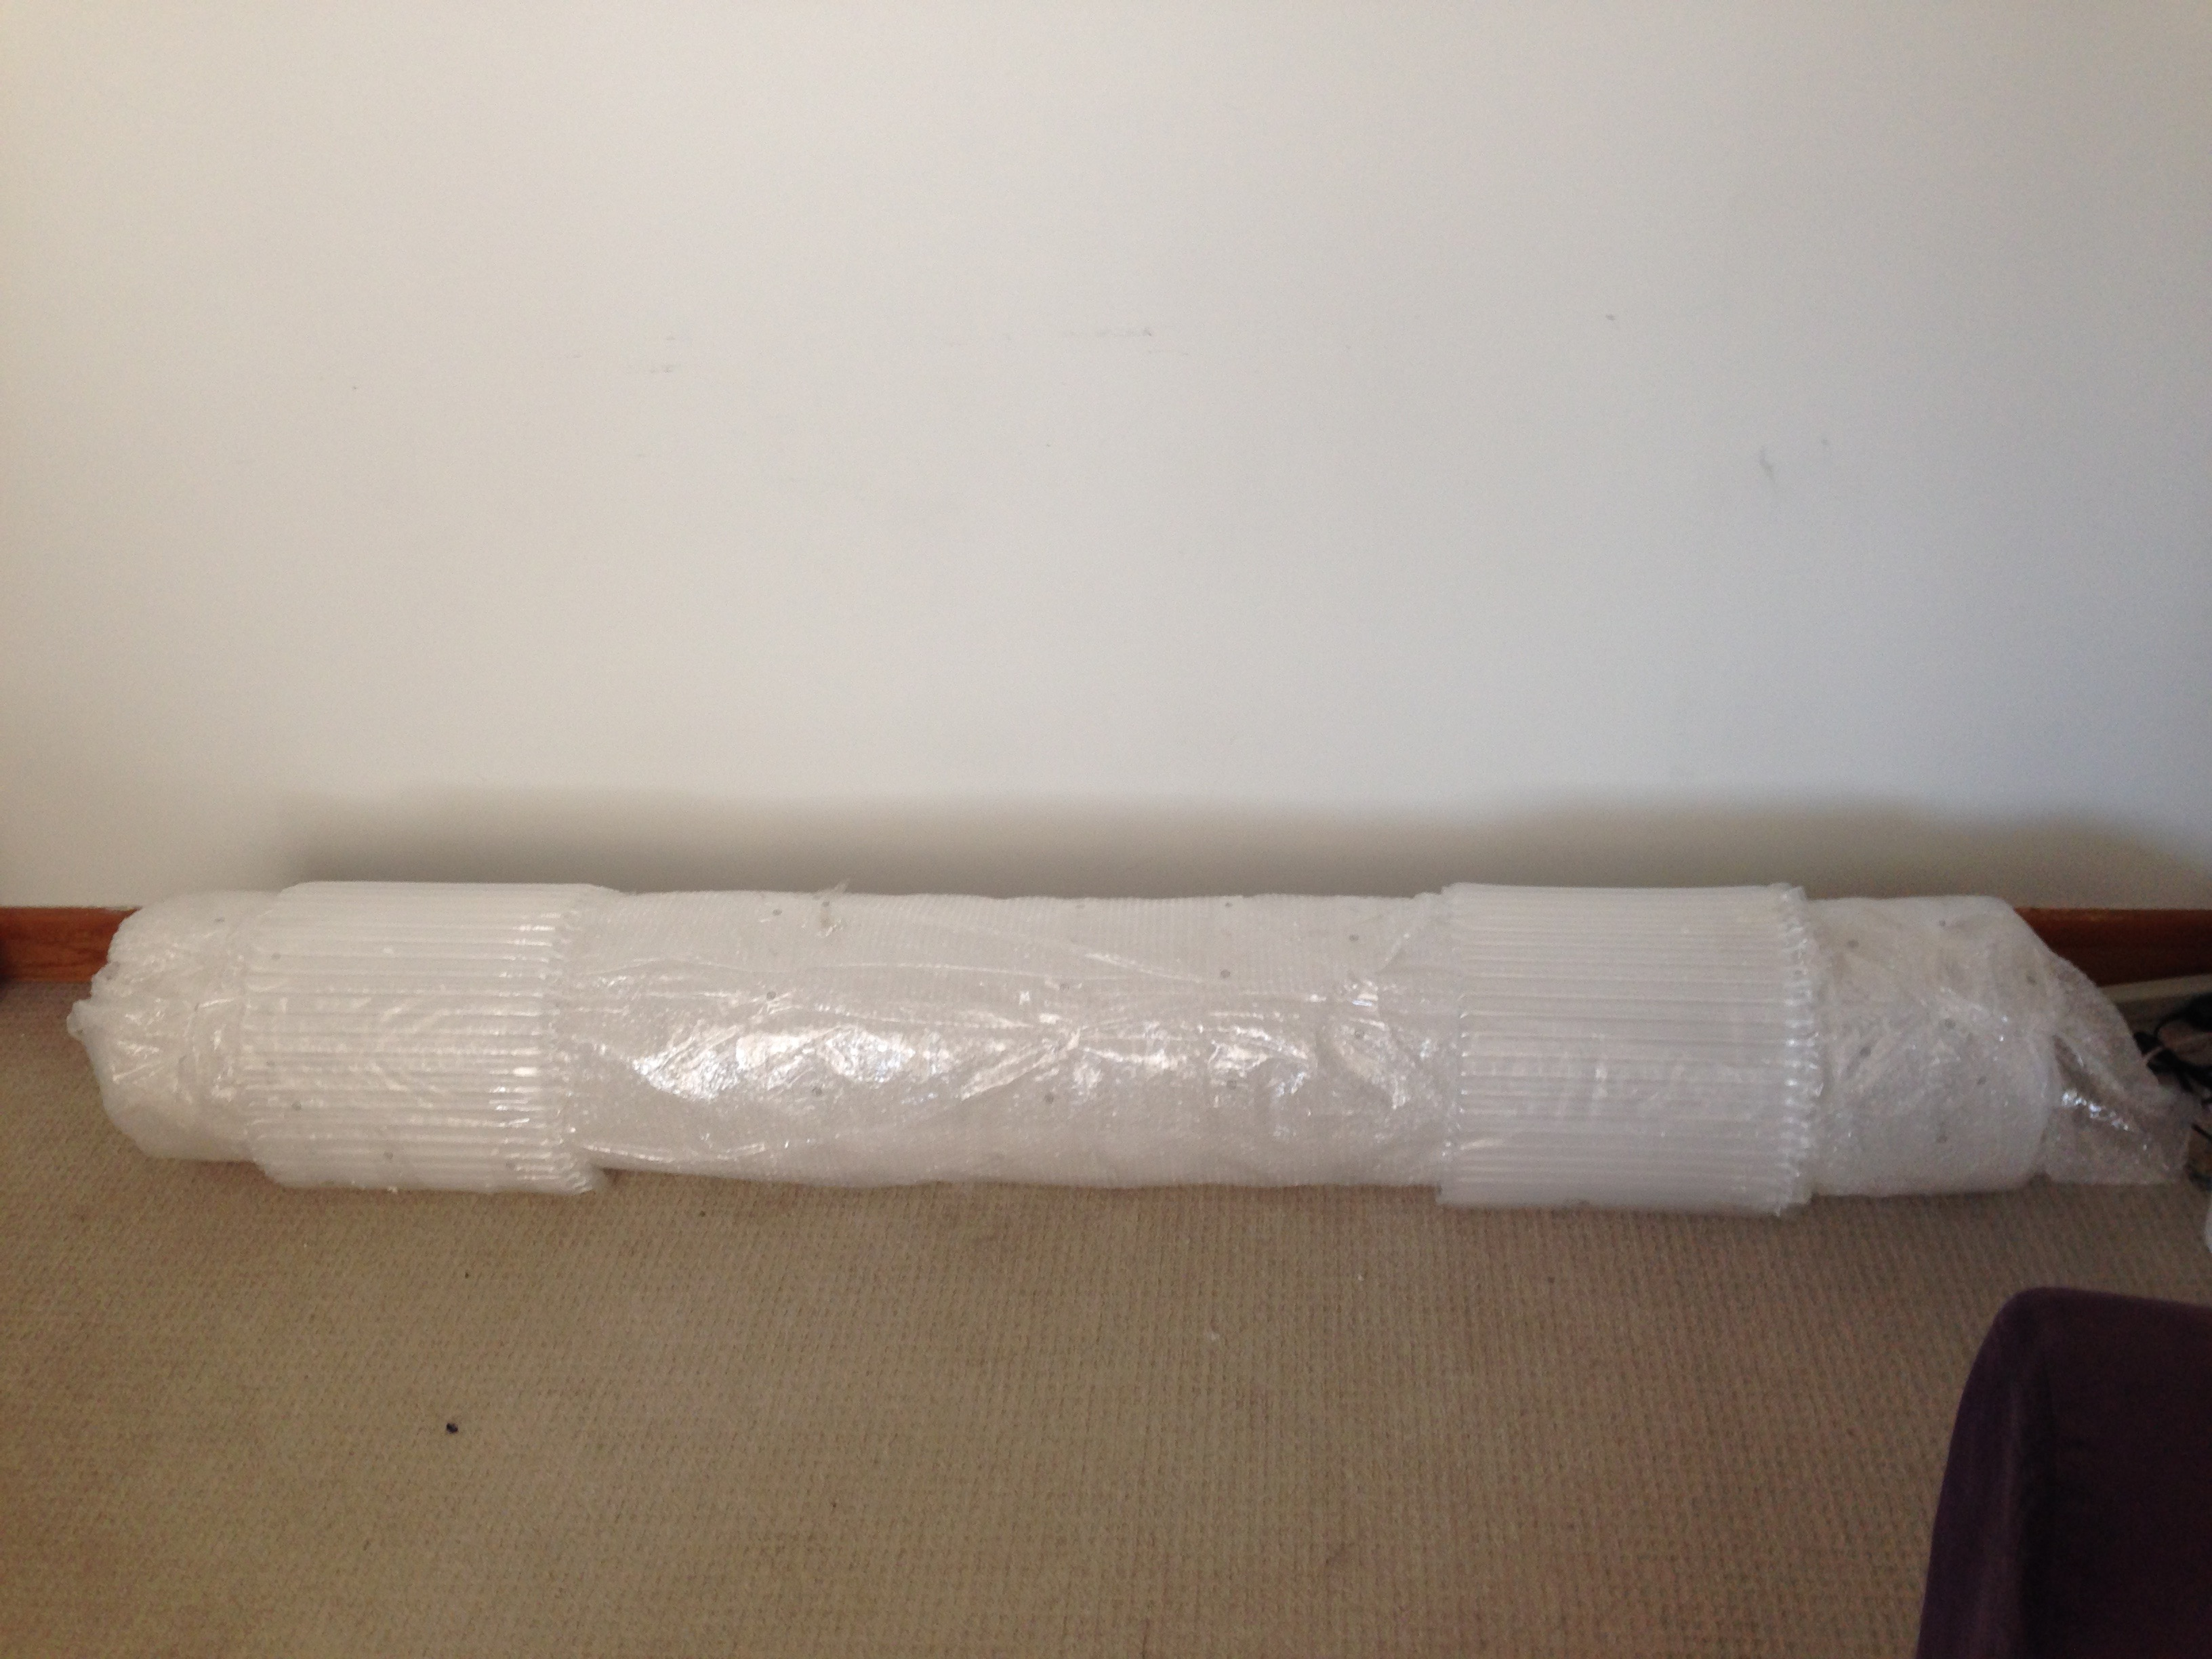 This is the quartz tube, in all its (still slightly packaged) glory.